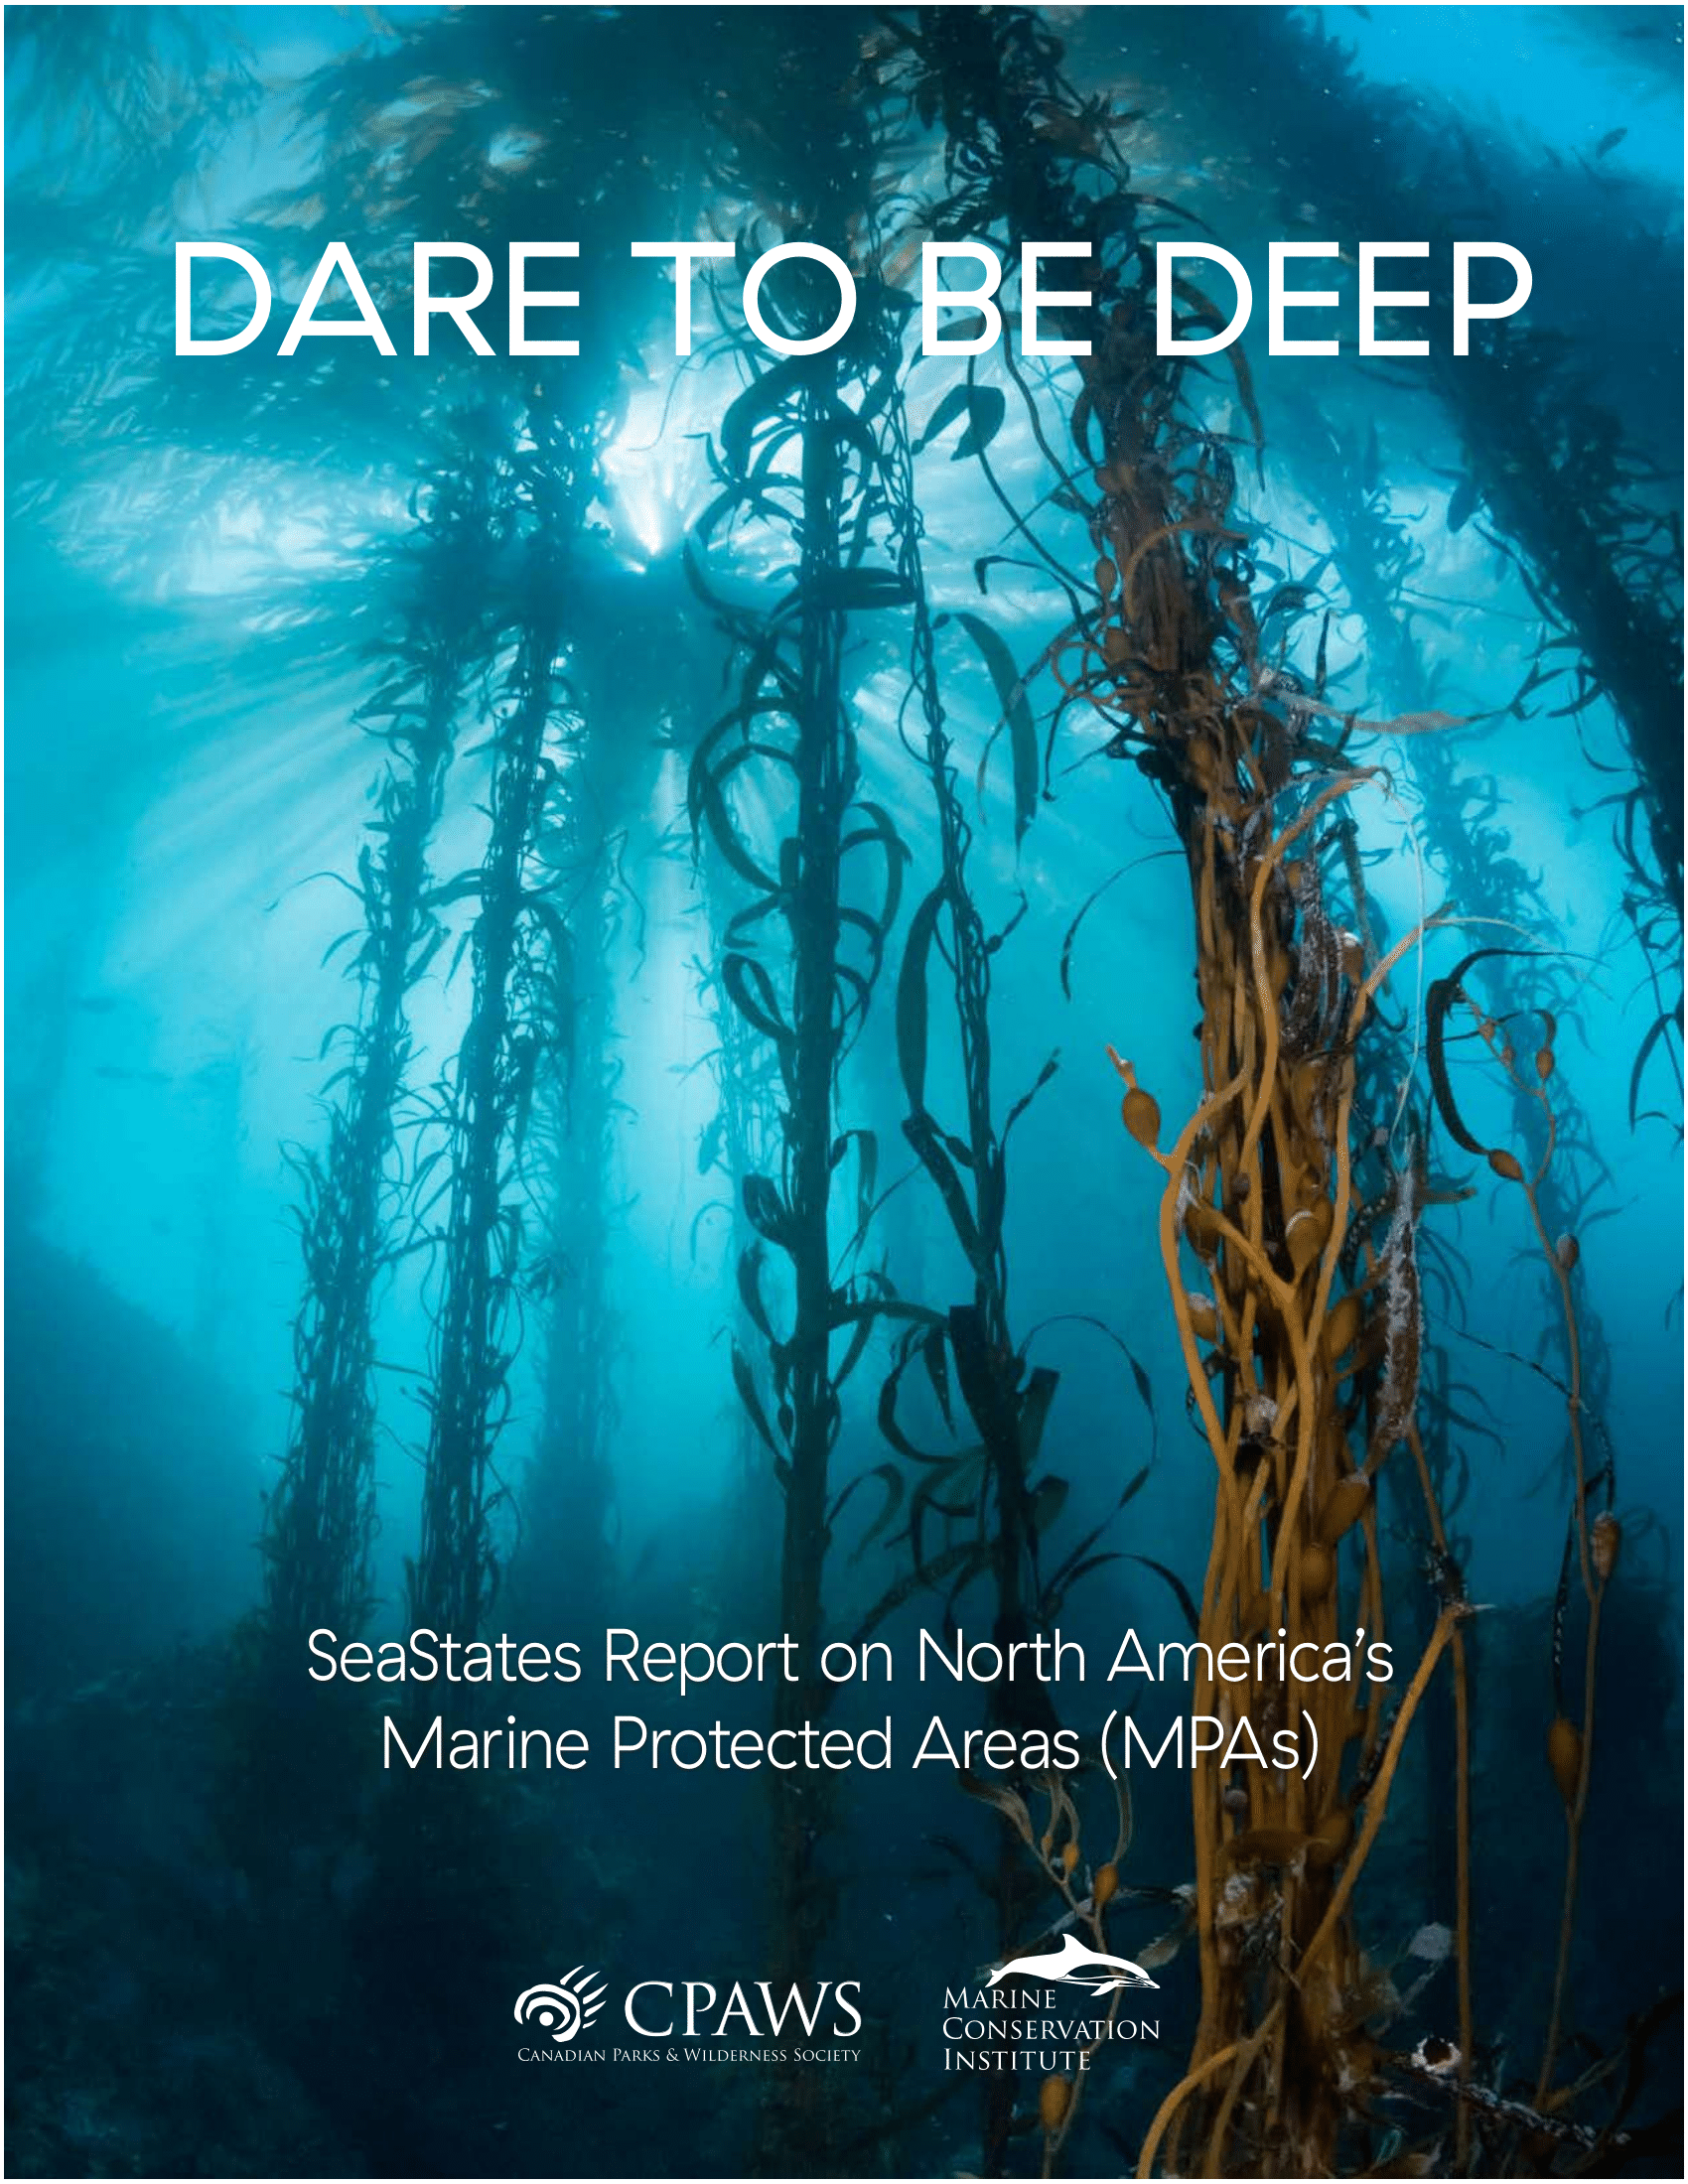 cpaws_daredeep2016_report_2pg_fnlmr_rev3_titlepage-1